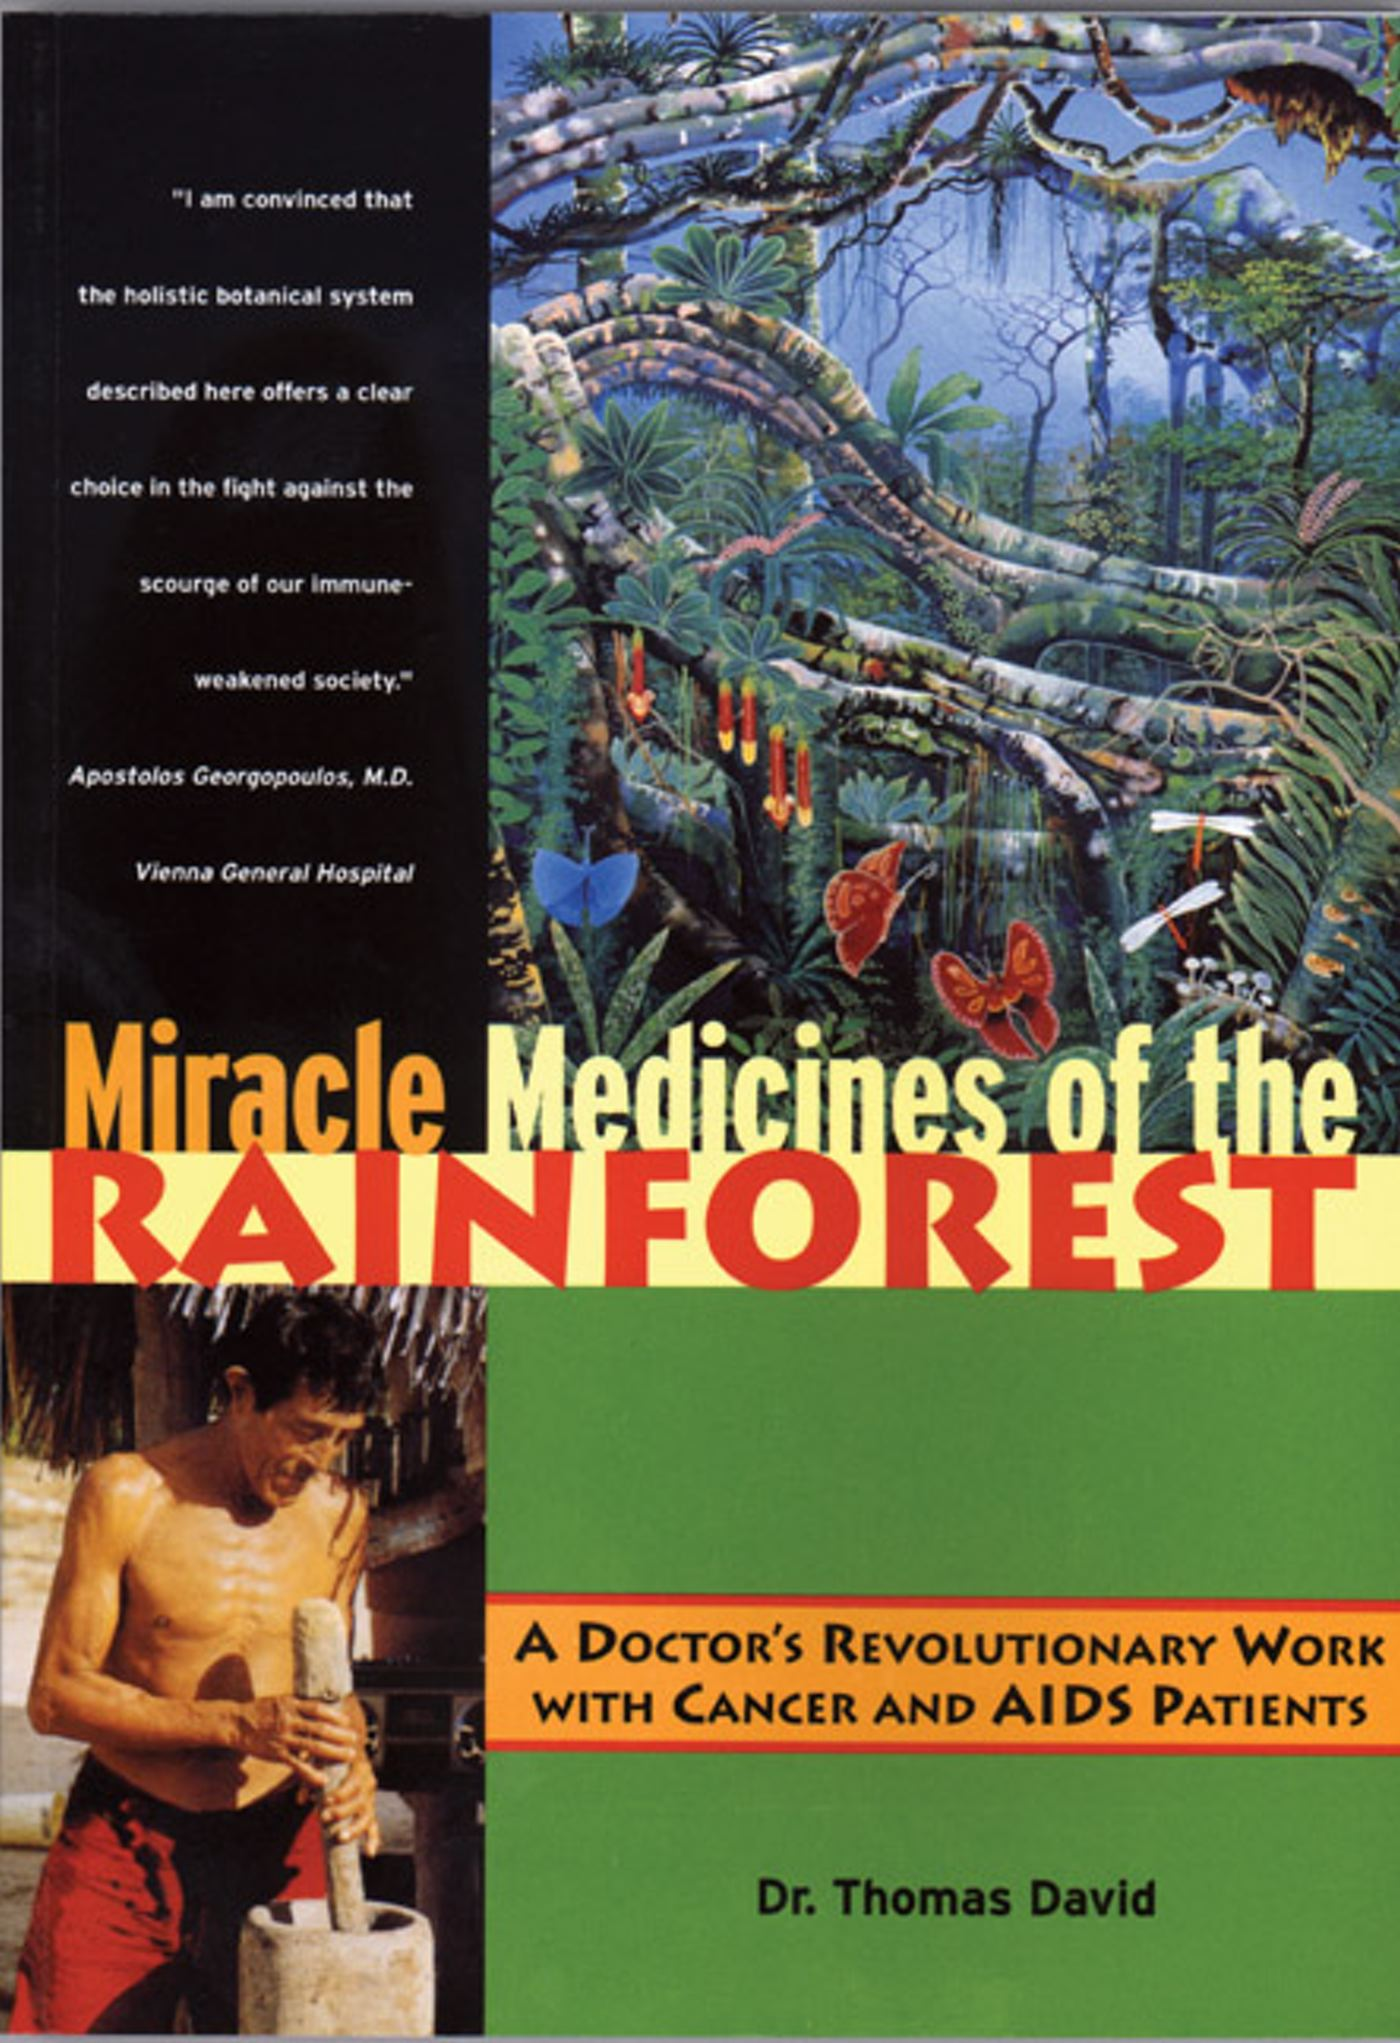 Miracle medicines of the rainforest 9780892817467 hr